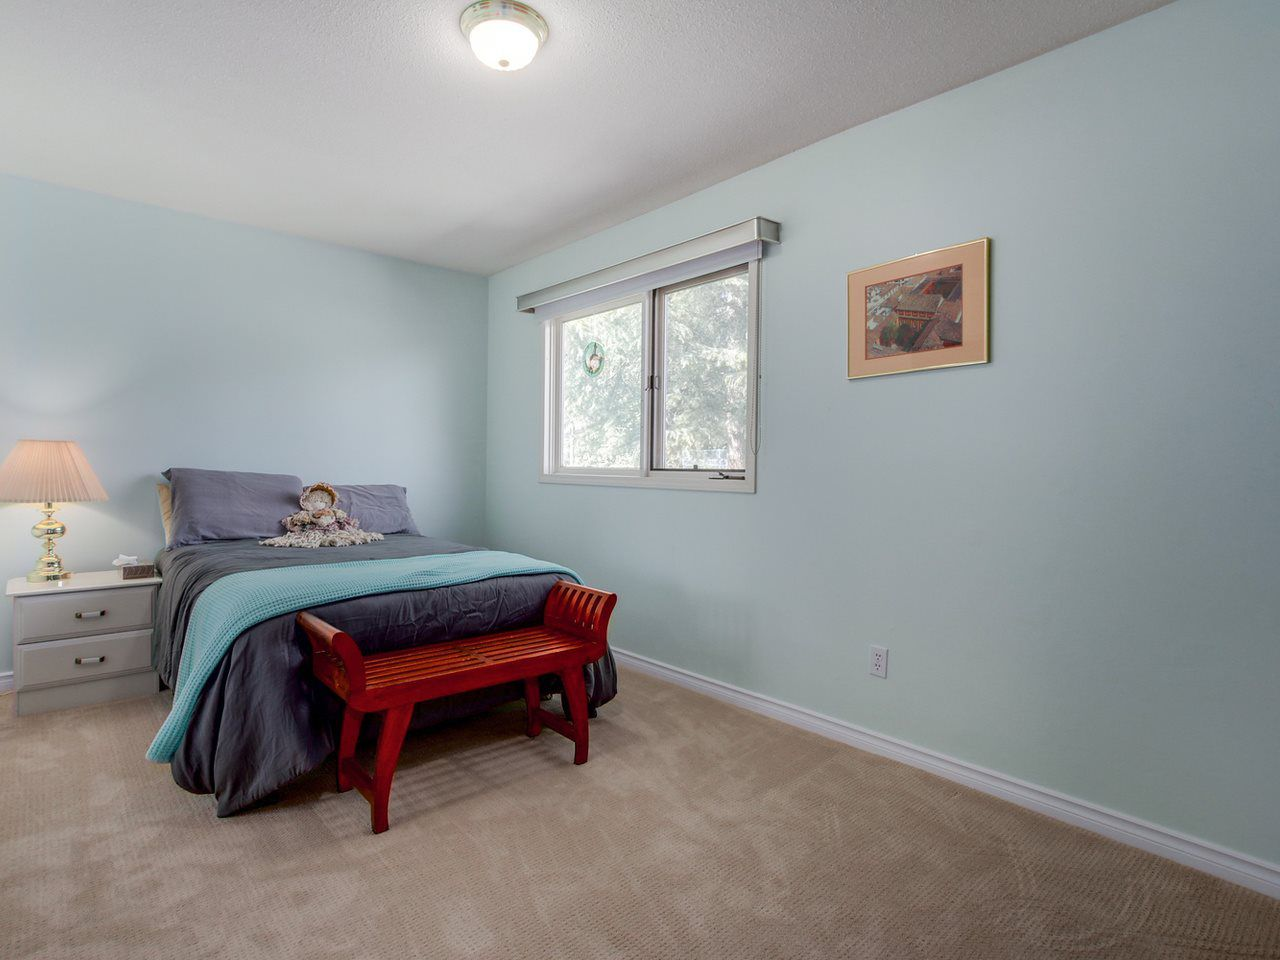 Photo 12: Photos: 449 E 5TH Street in North Vancouver: Lower Lonsdale House for sale : MLS®# R2056647